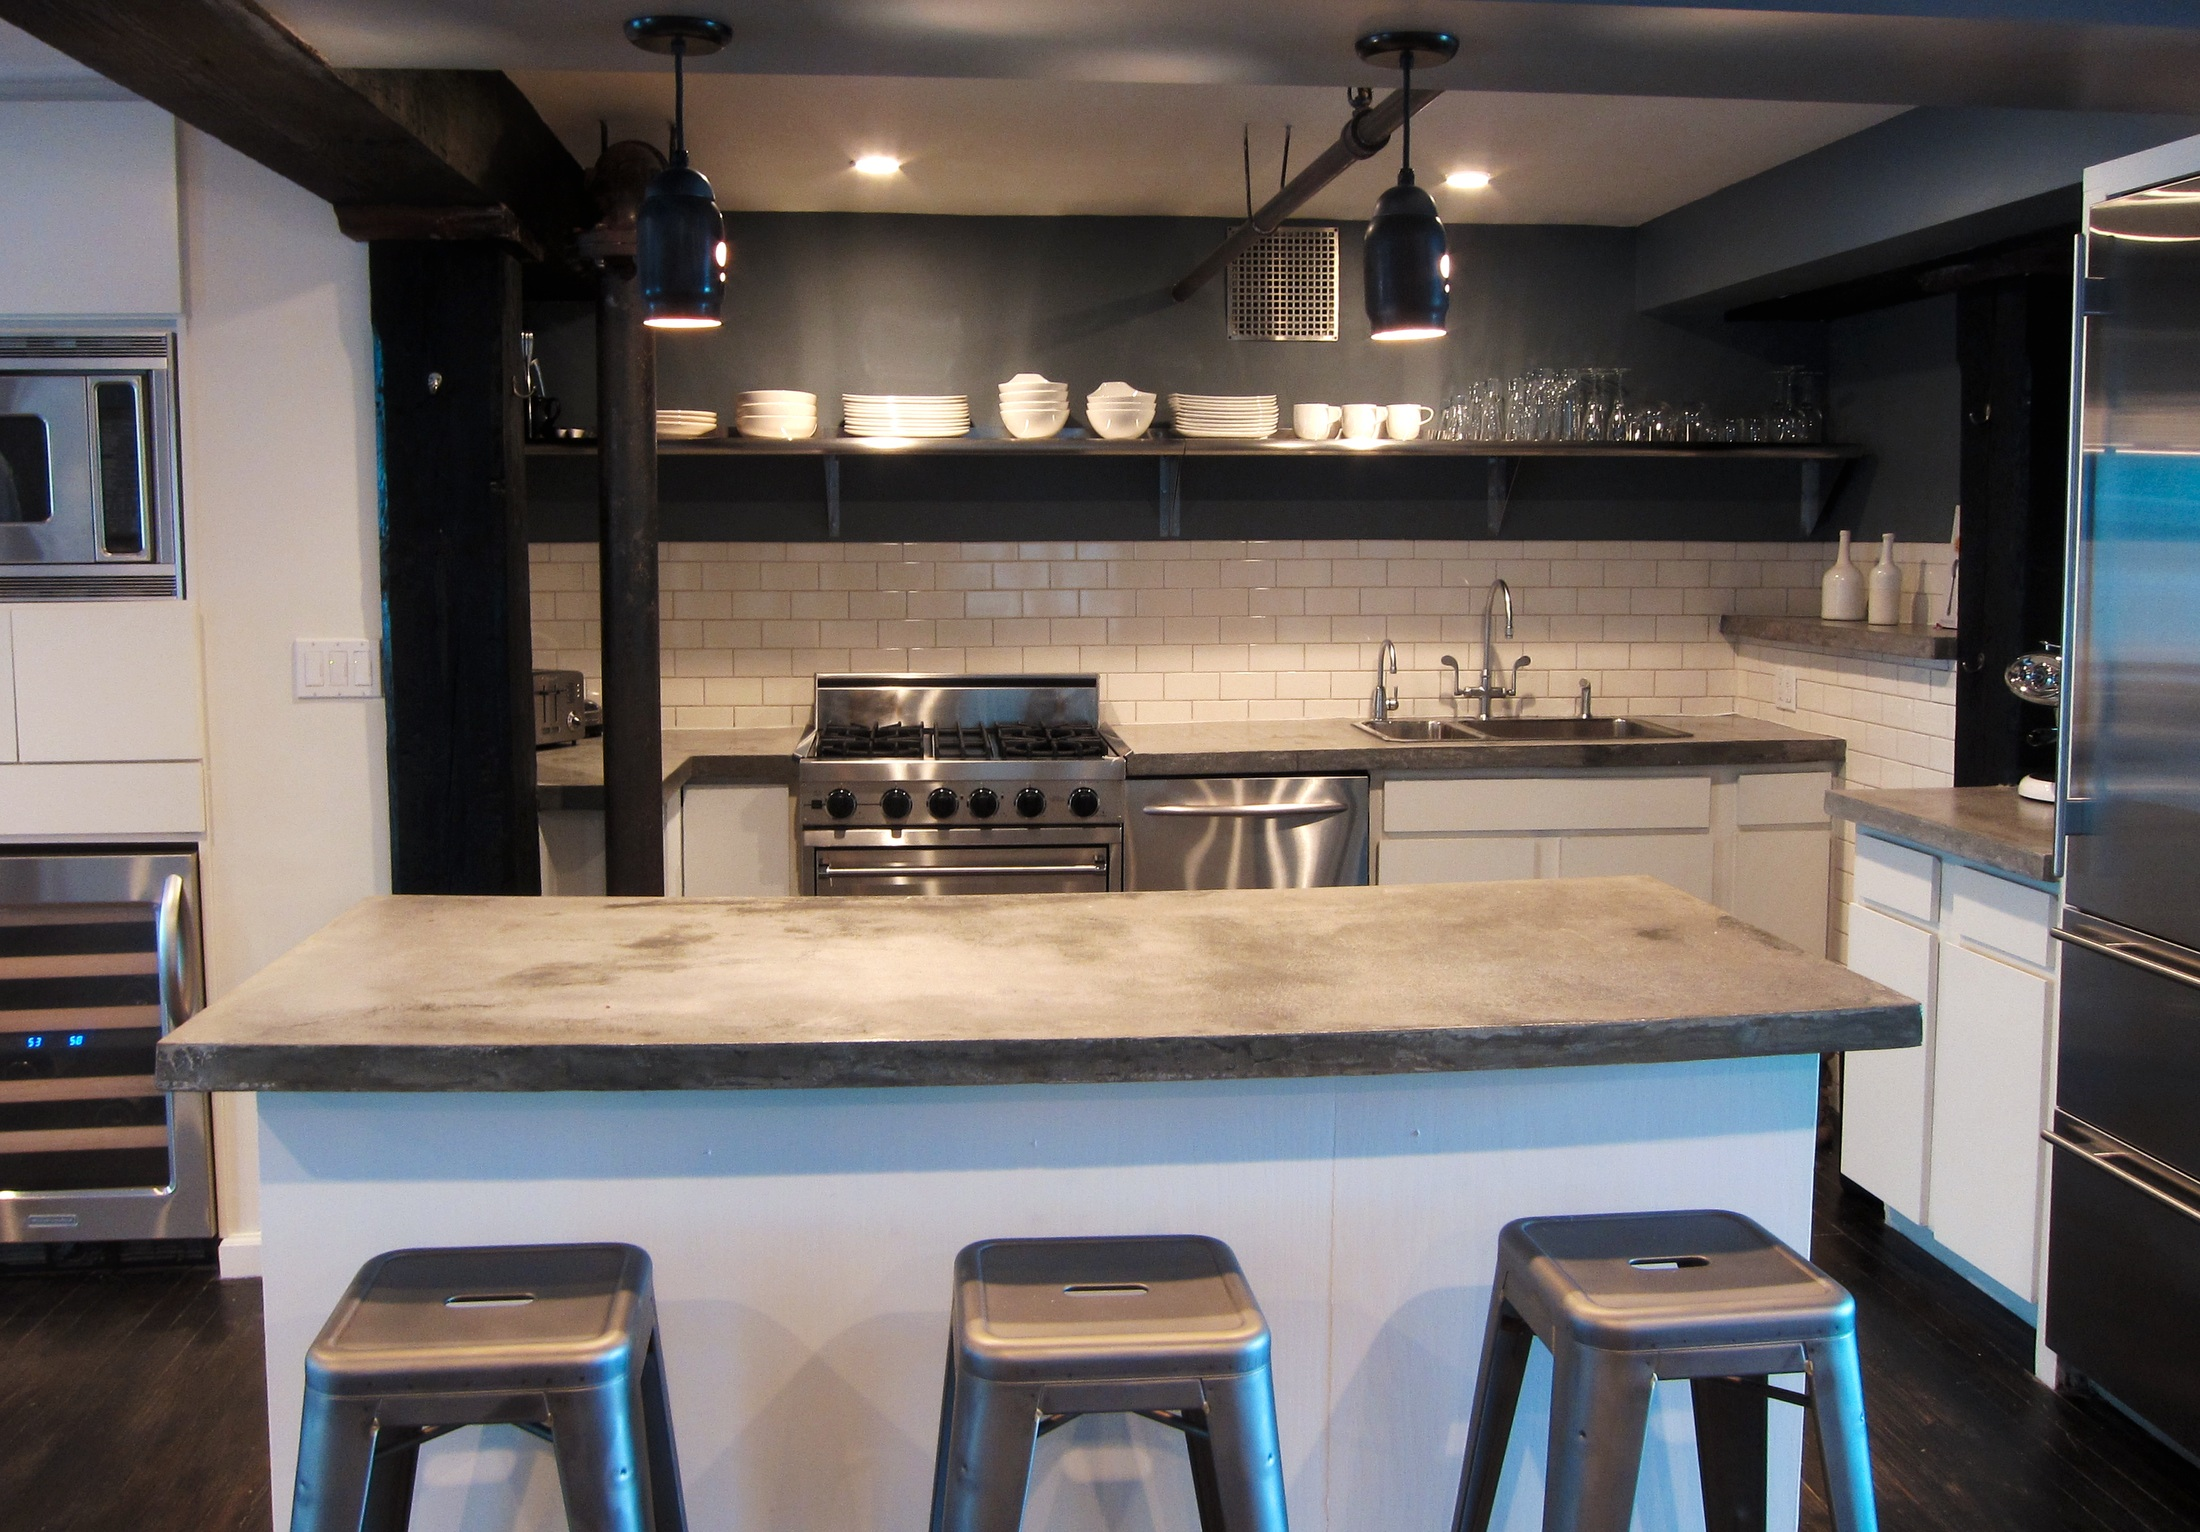 A NYC Kitchen Recently Completed By Reed Woodsonu0027s Firm, Beedus U0026 Jardin.